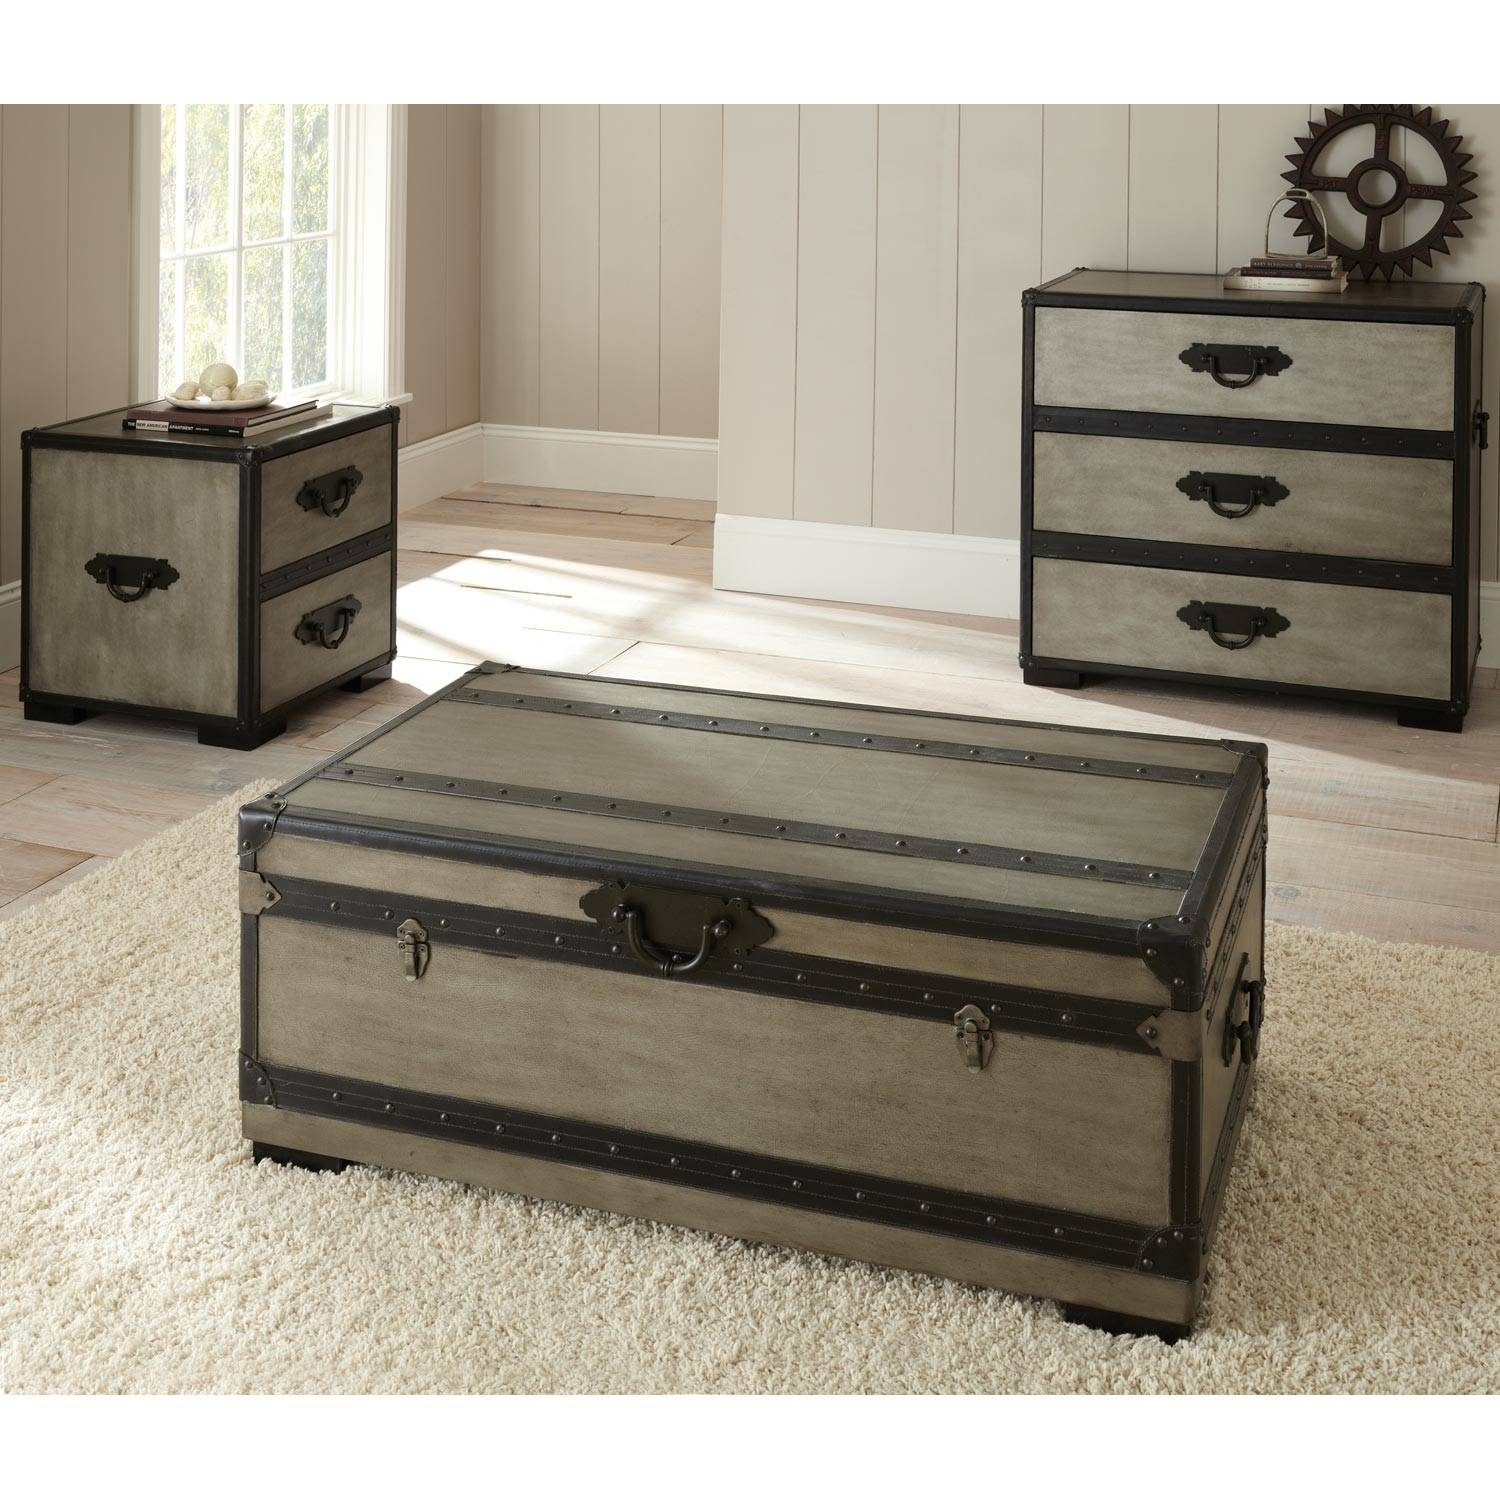 Coffee Table: Terrific Storage Chest Coffee Table Design Ideas intended for Storage Trunk Coffee Tables (Image 7 of 30)